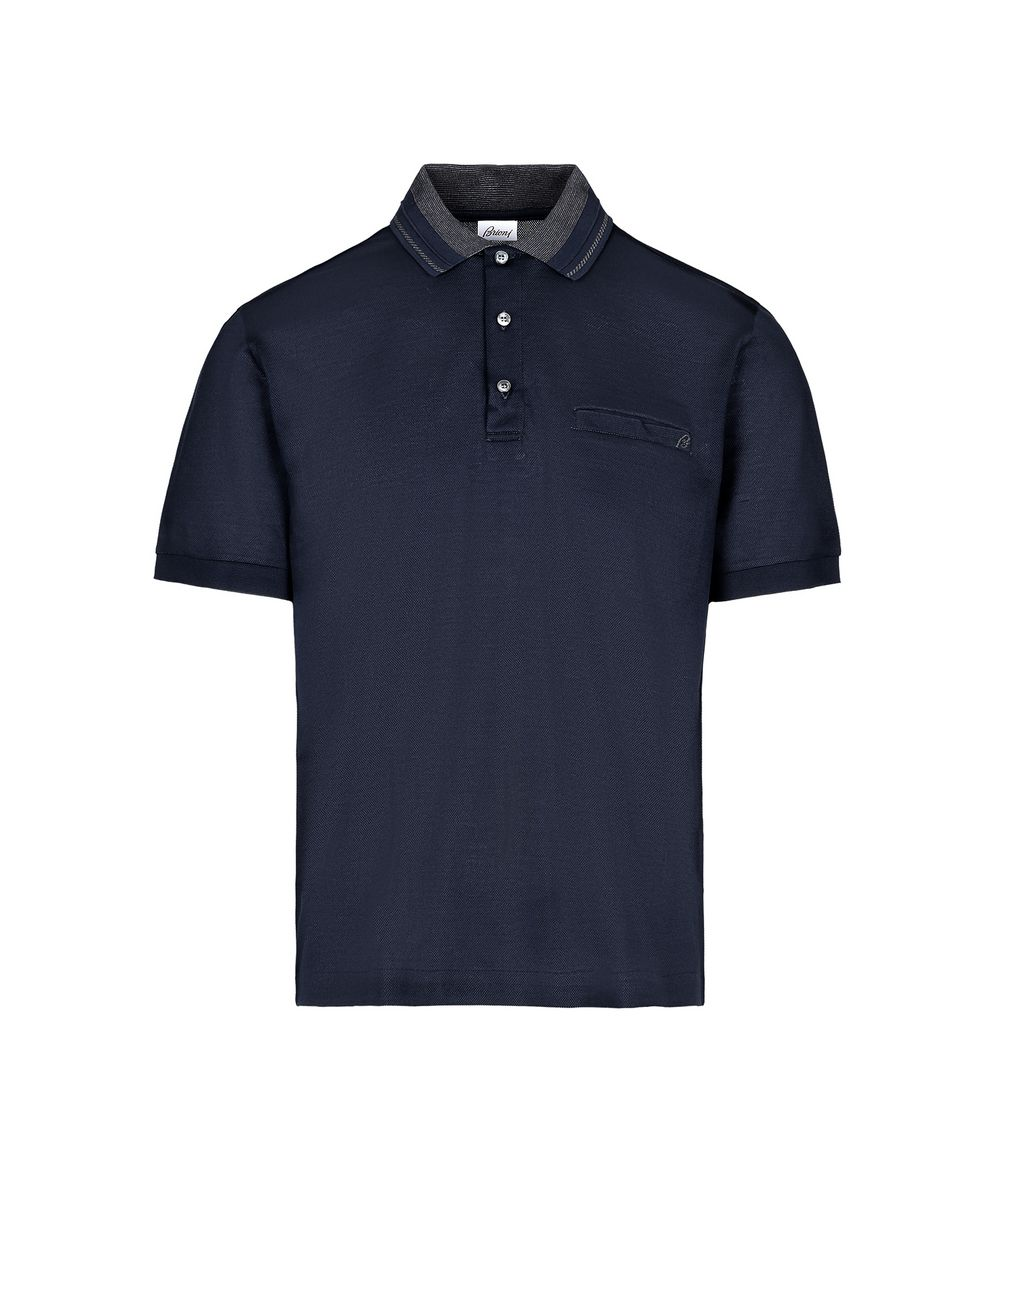 BRIONI Navy Blue Polo Shirt with Pocket T-Shirts & Polos Man f